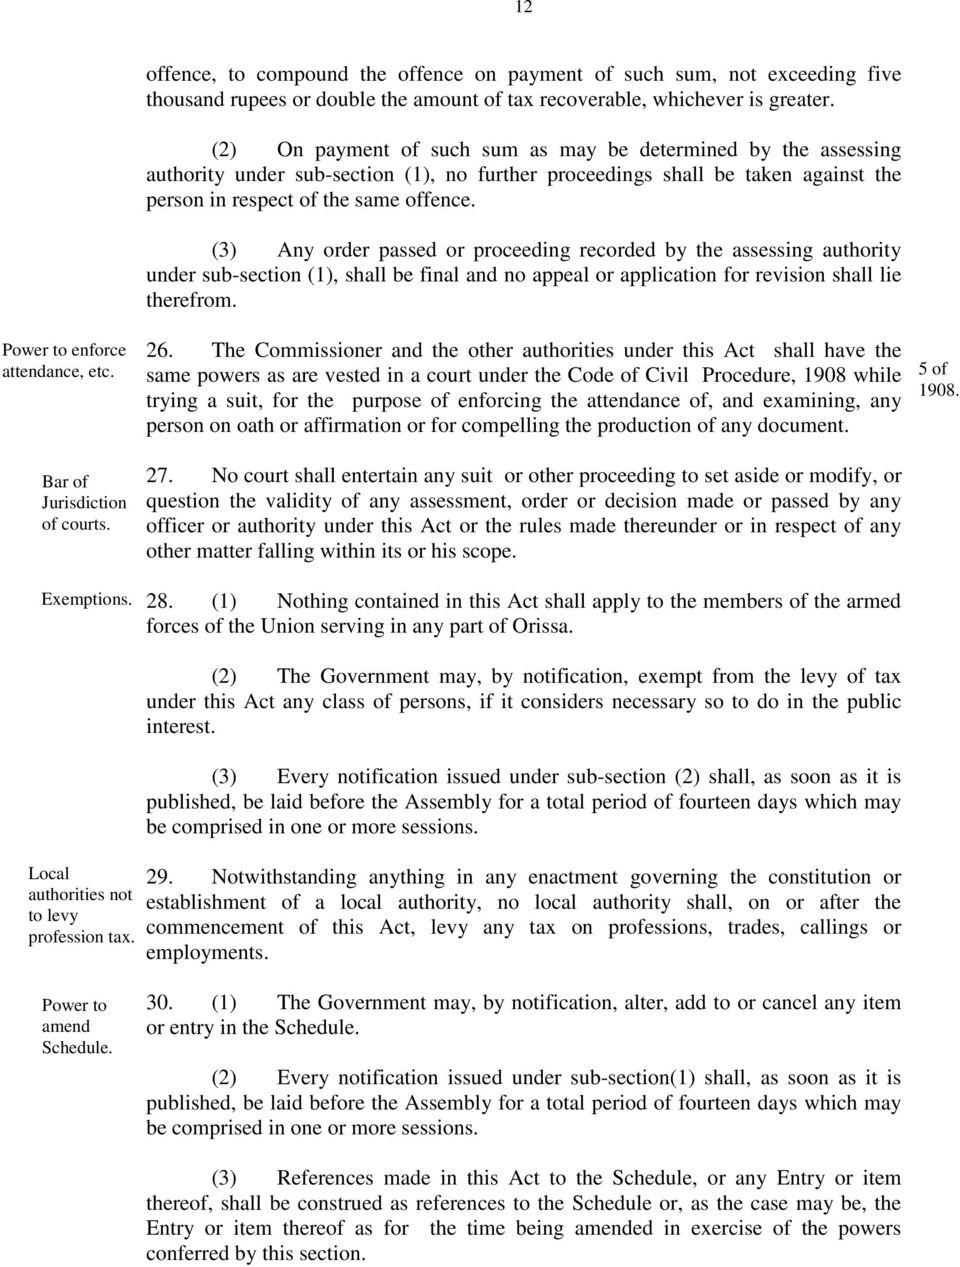 (2) On payment of such sum as may be determined by the assessing authority under sub-section (1), no further proceedings shall be taken against the person in respect of the same offence.